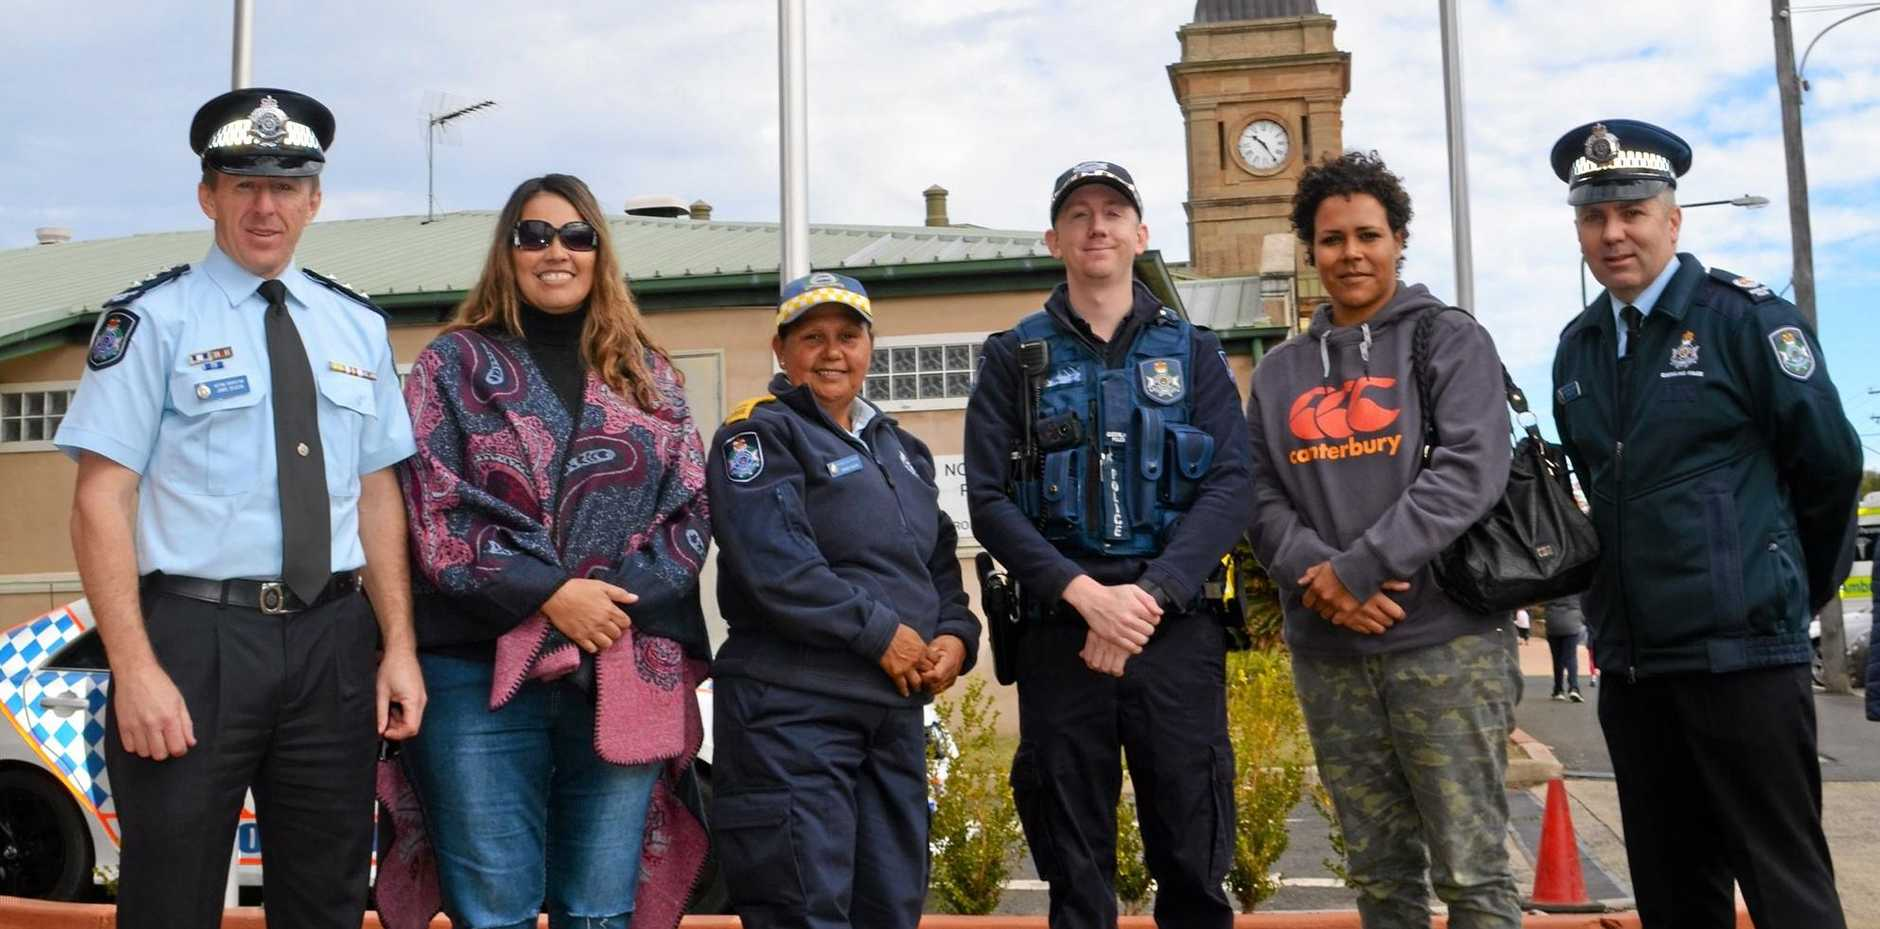 Warwick Police Sergeant Jamie Deacon, Melissa Chalmers, Community Liaison Officer Mandy Bahr, Constable Brad Bennett, Lithia Kusu and Acting Senior Sergeant Shane Reid at the flag raising ceremony to mark the start of NAIDOC week in Warwick.